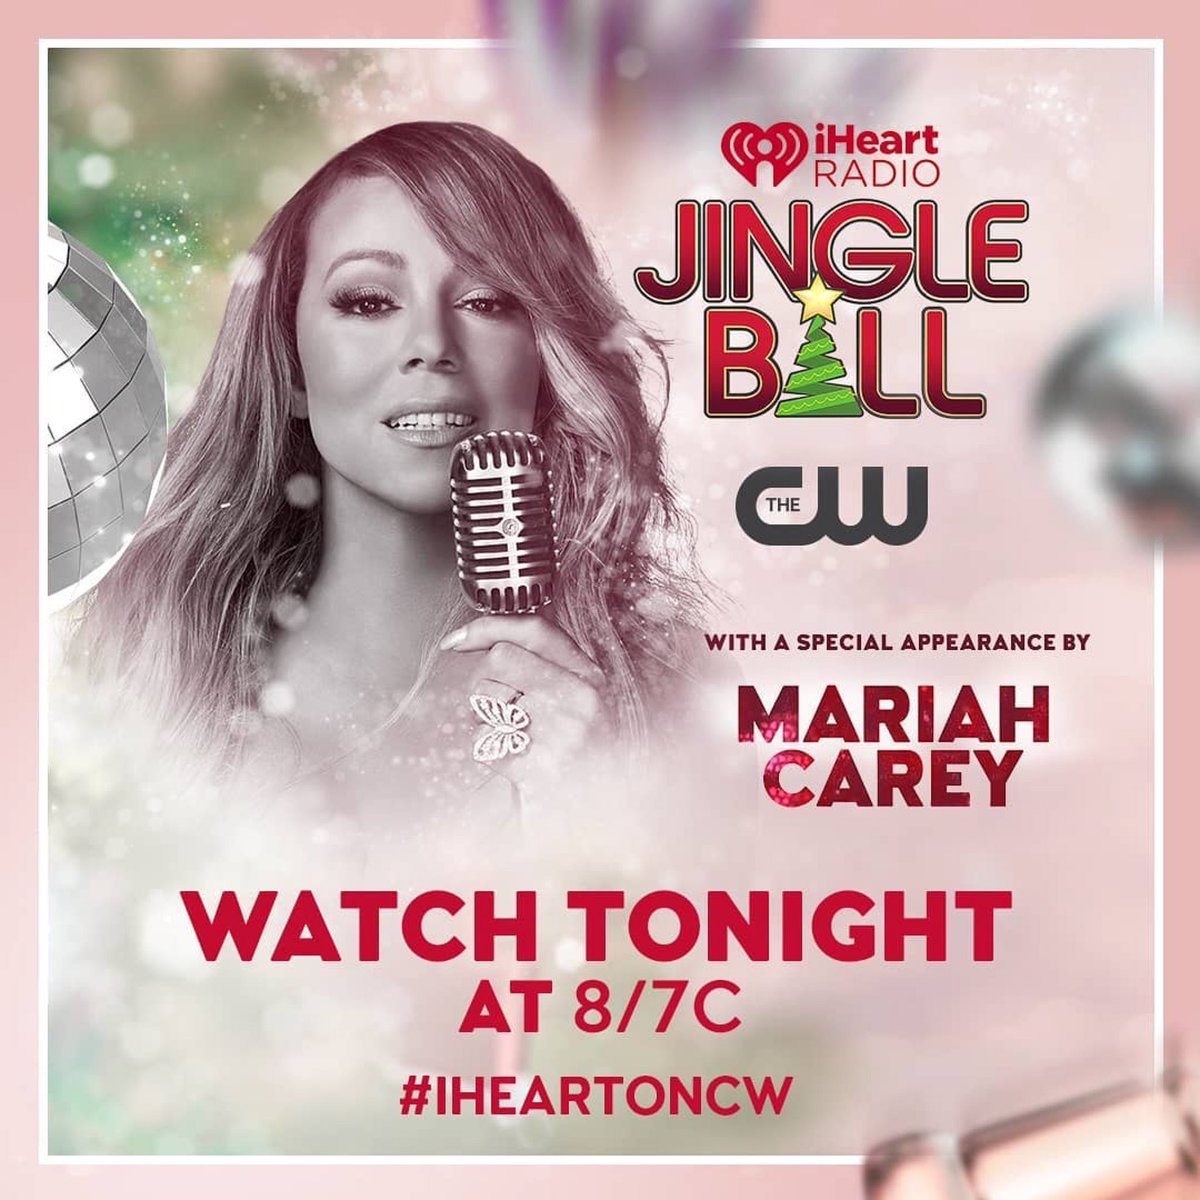 Watch @MariahCarey on the 2018 @iHeartRadio Jingle Ball tonight at 8/7c only on @theCW #iHeartOnCW